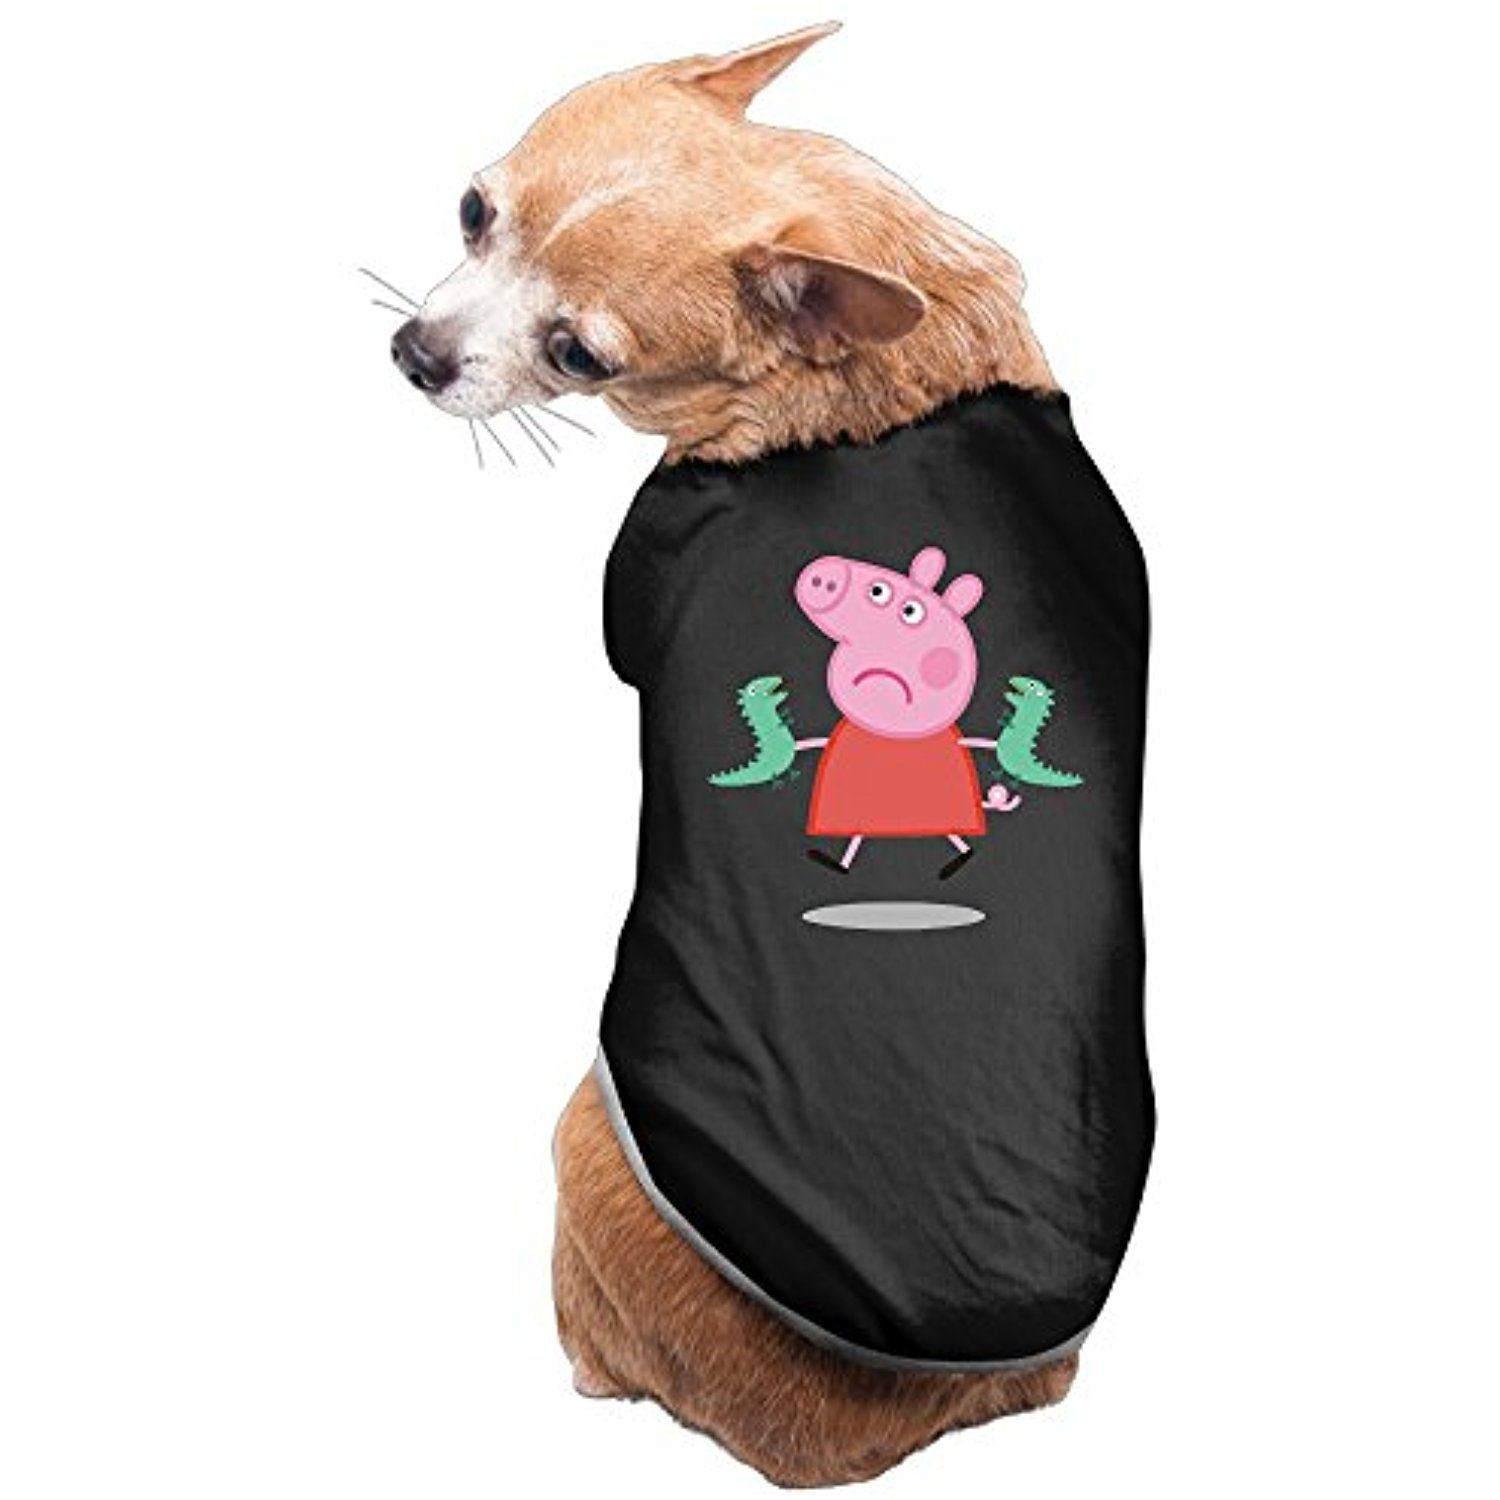 Peppa Pig George Toys Pet Dog Costume You Can Read More Reviews